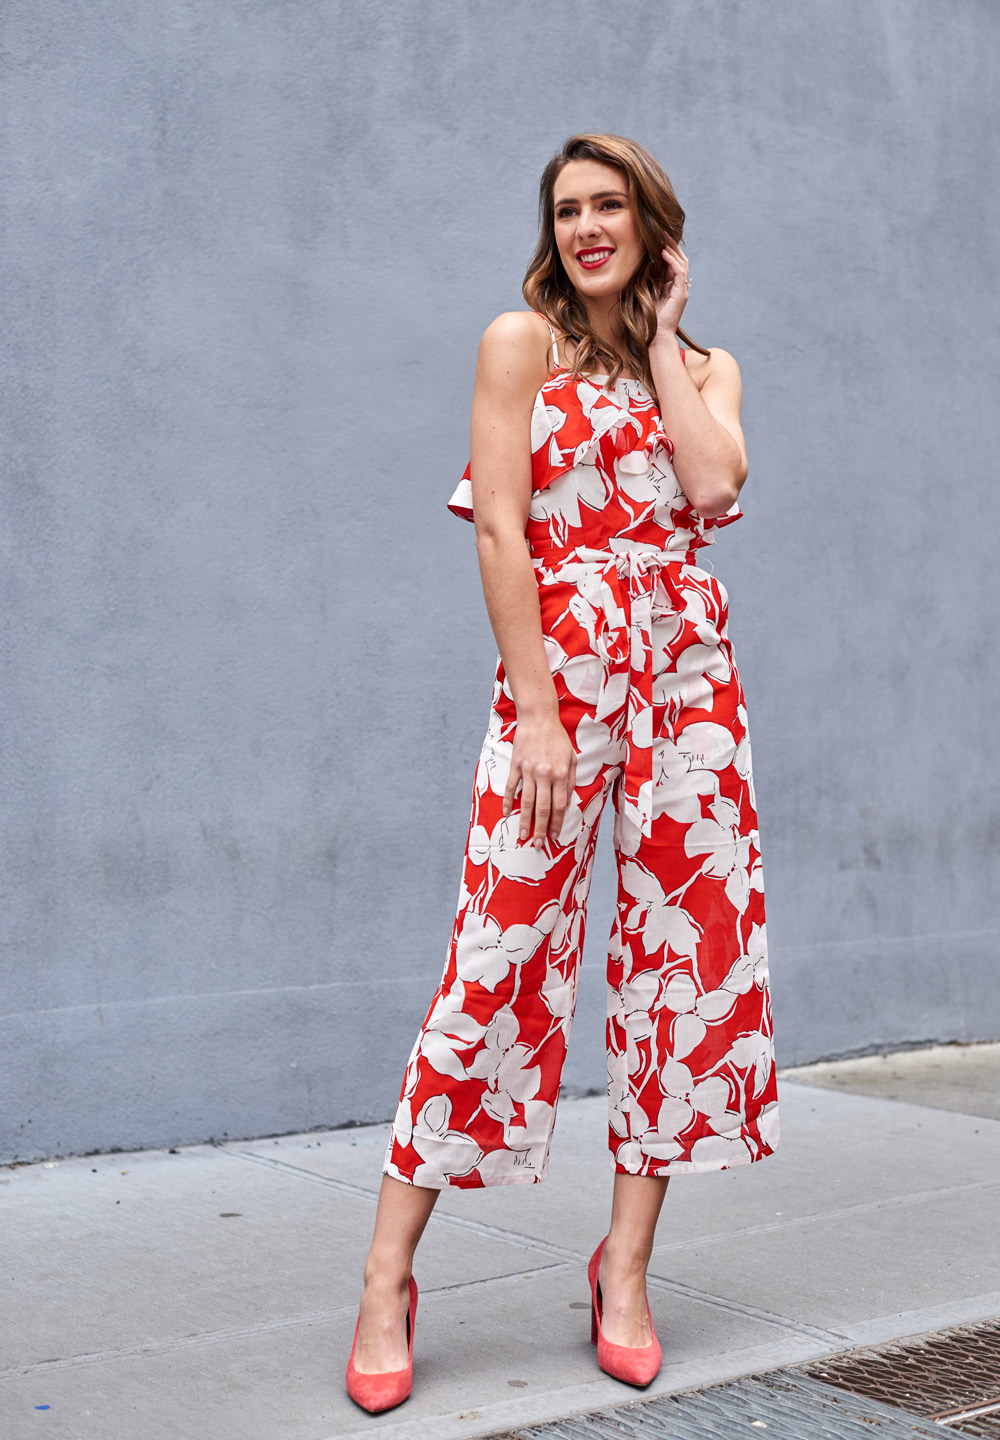 Samantha Metll of Bonjour Blue wearing a red floral print jumpsuit